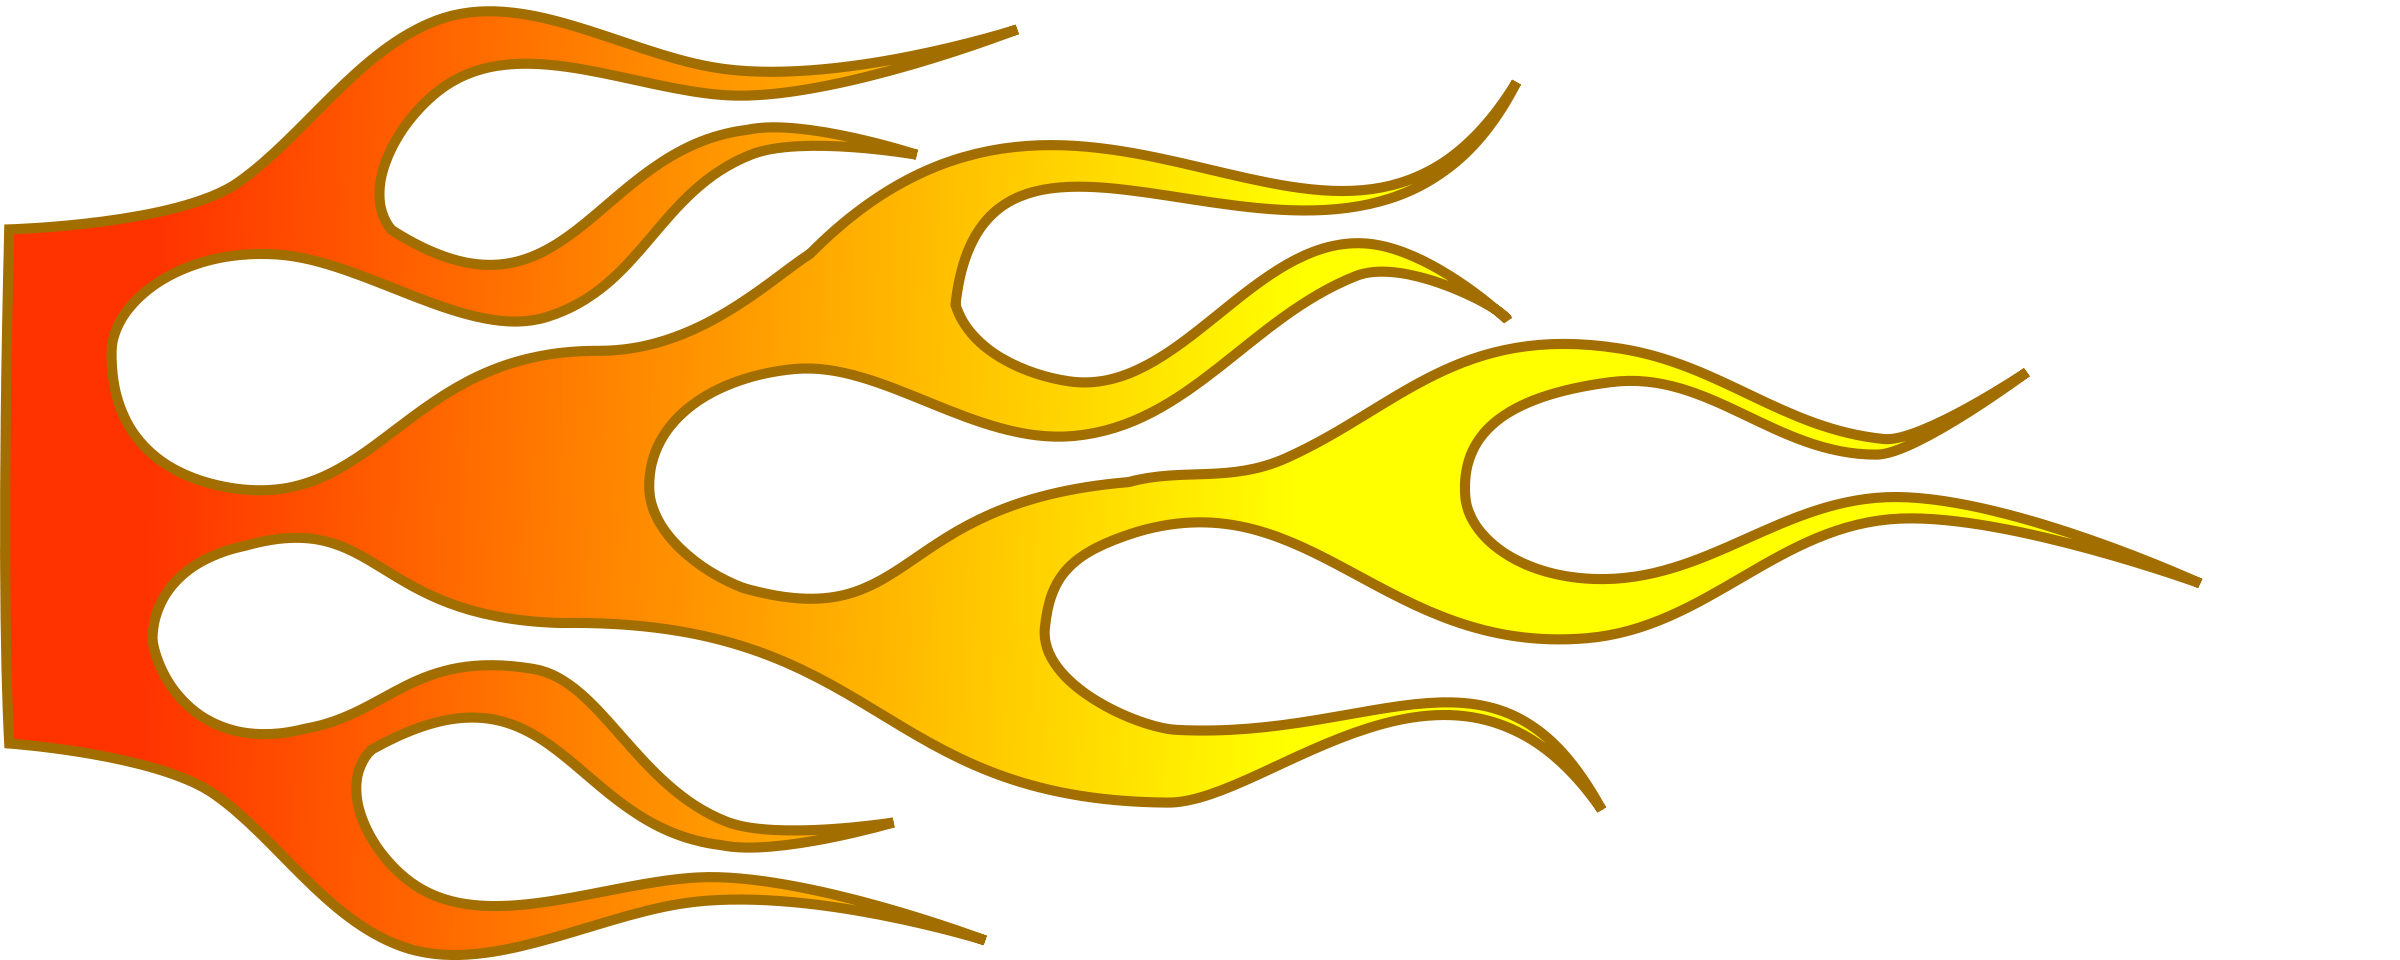 Lines free collection download. Fire clipart logo